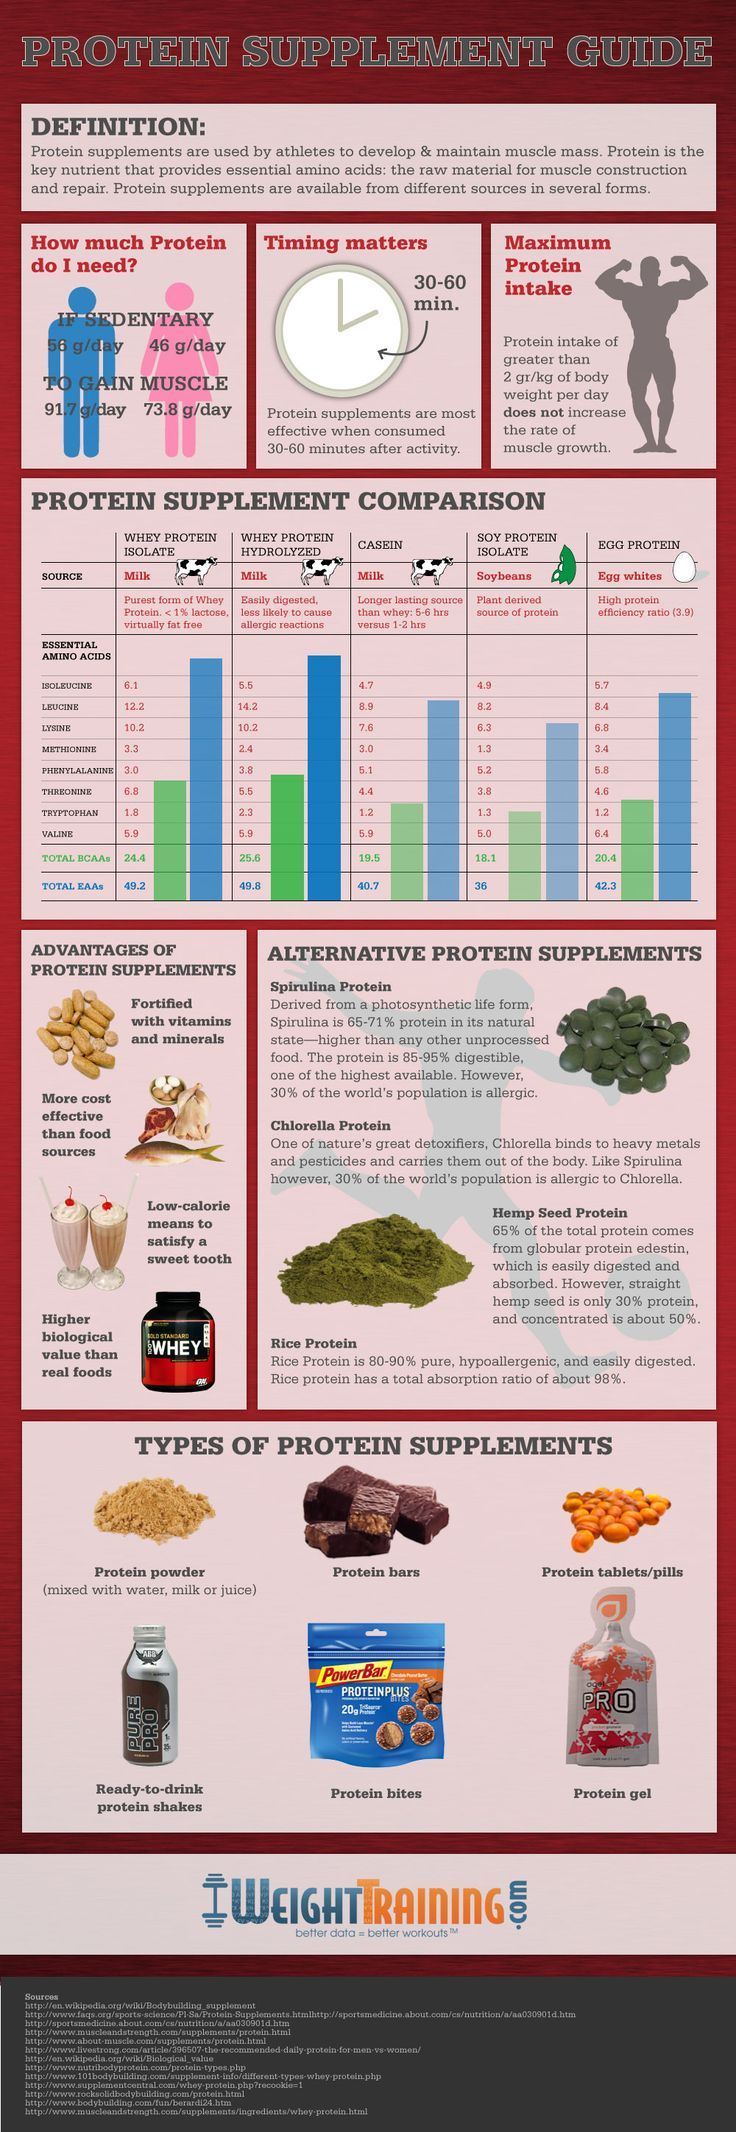 Having trouble on choosing a protein supplement? Check out this protein supplement guide!